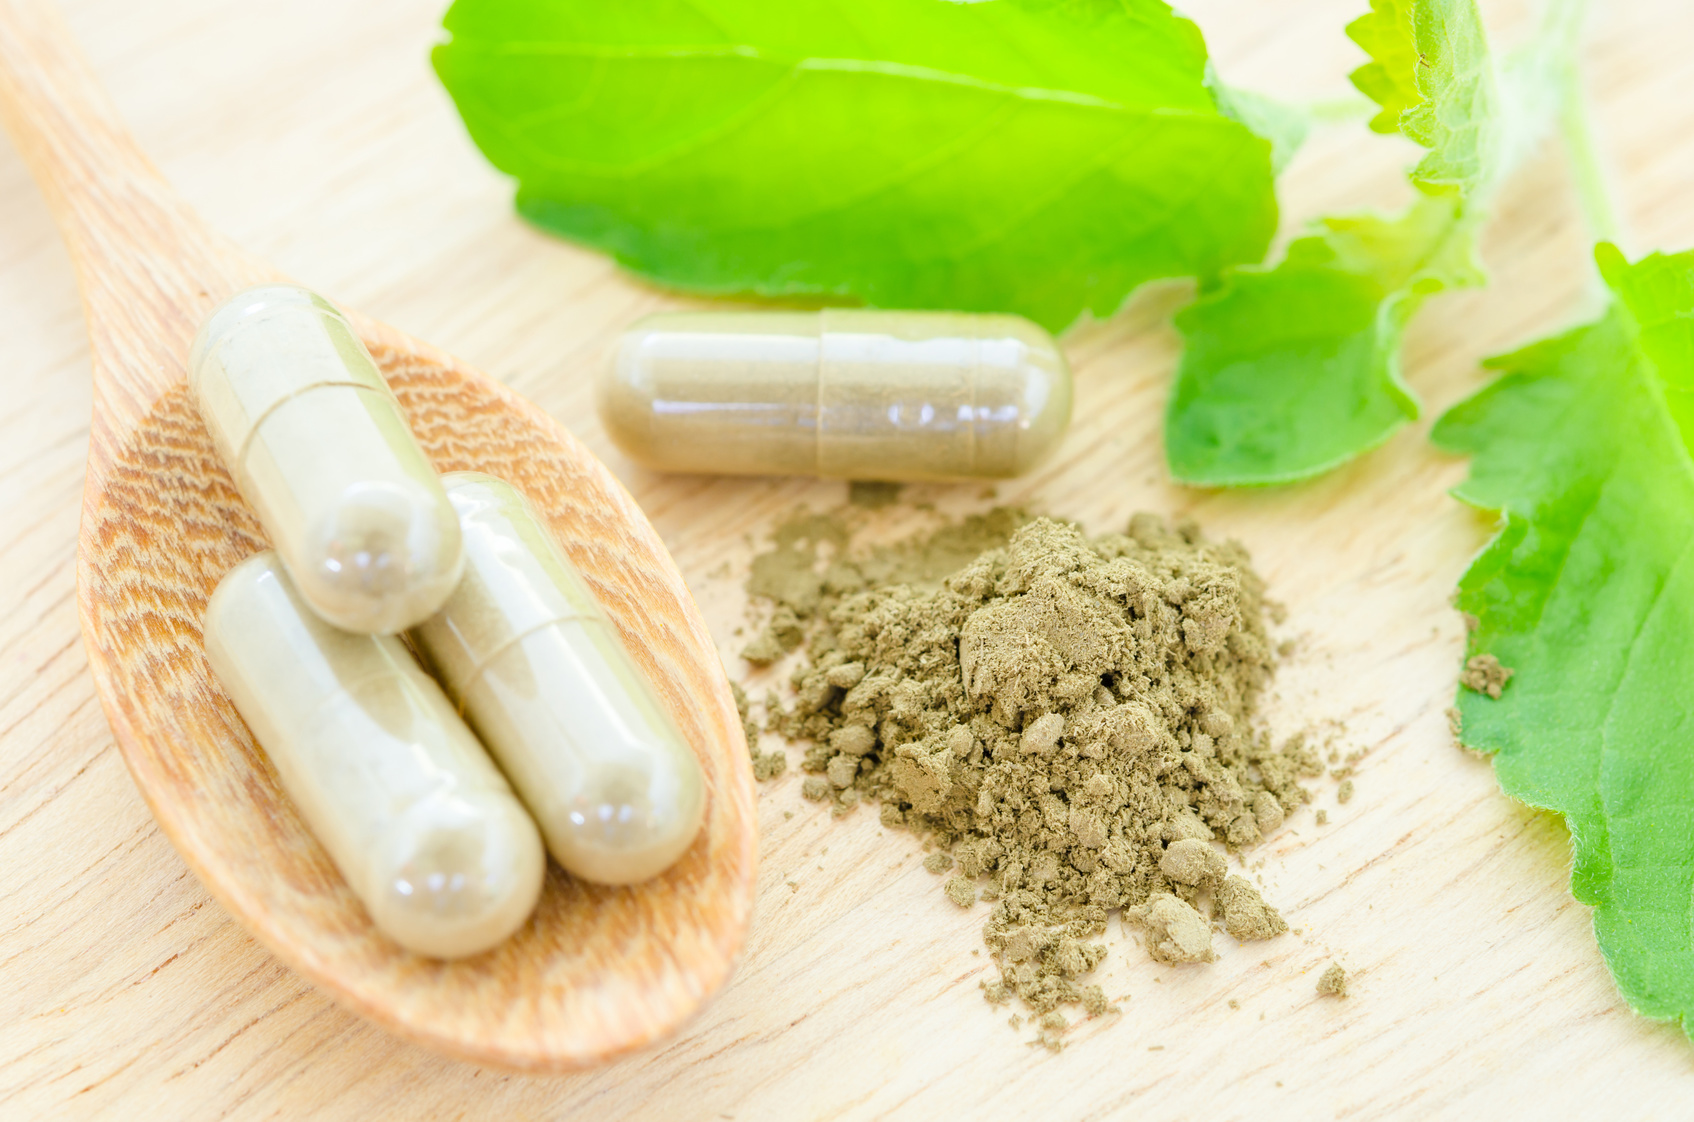 COMPARISON OF THE BEST JOINT SUPPLEMENTS